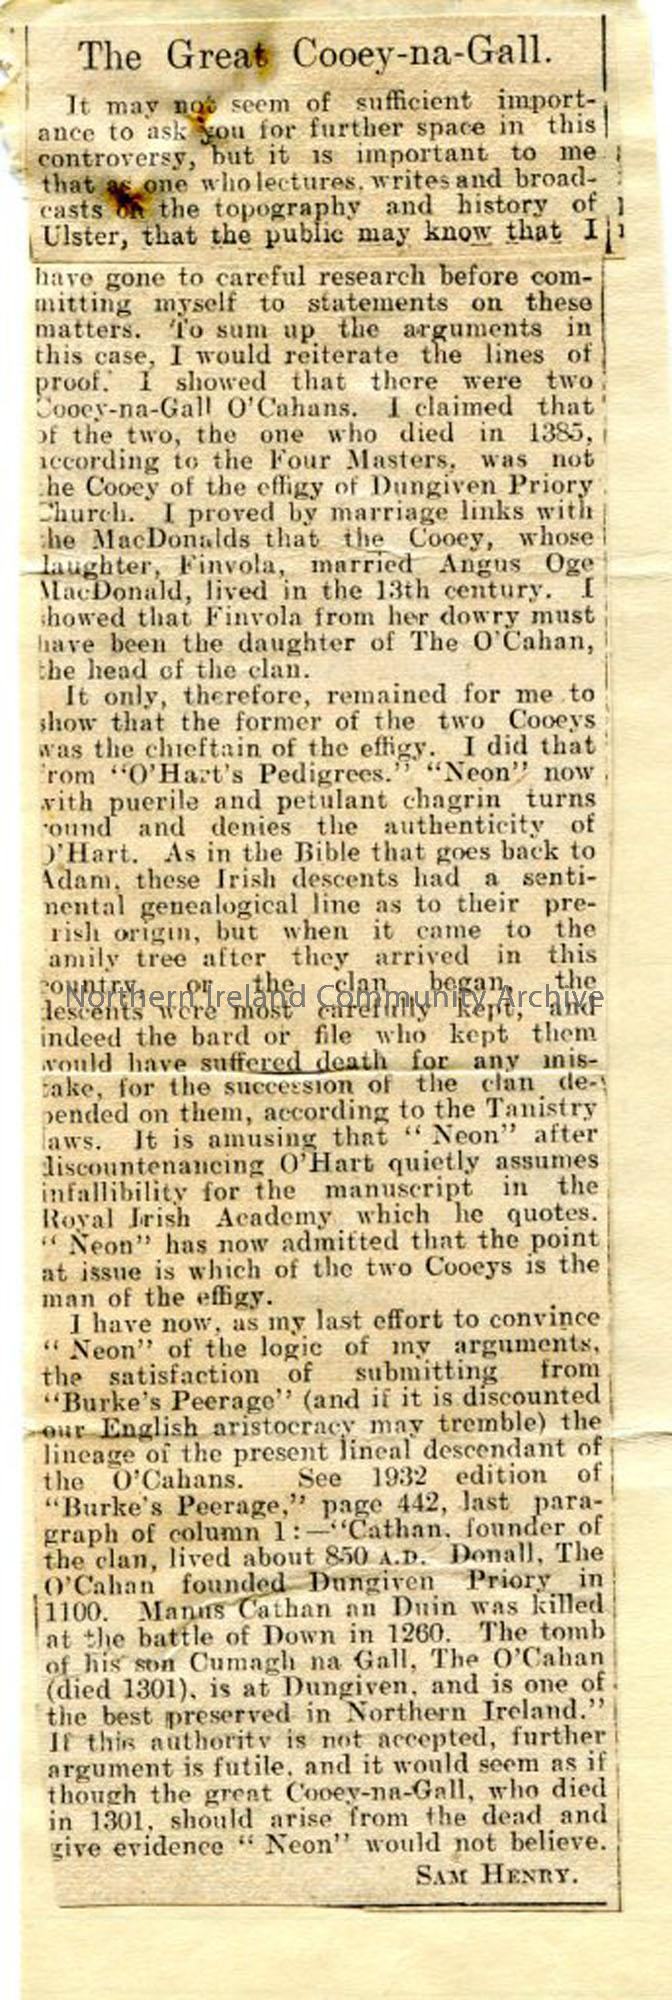 Newspaper cutting. letter from Sam Henry, 'titled 'The Great Cooey-na-gall'